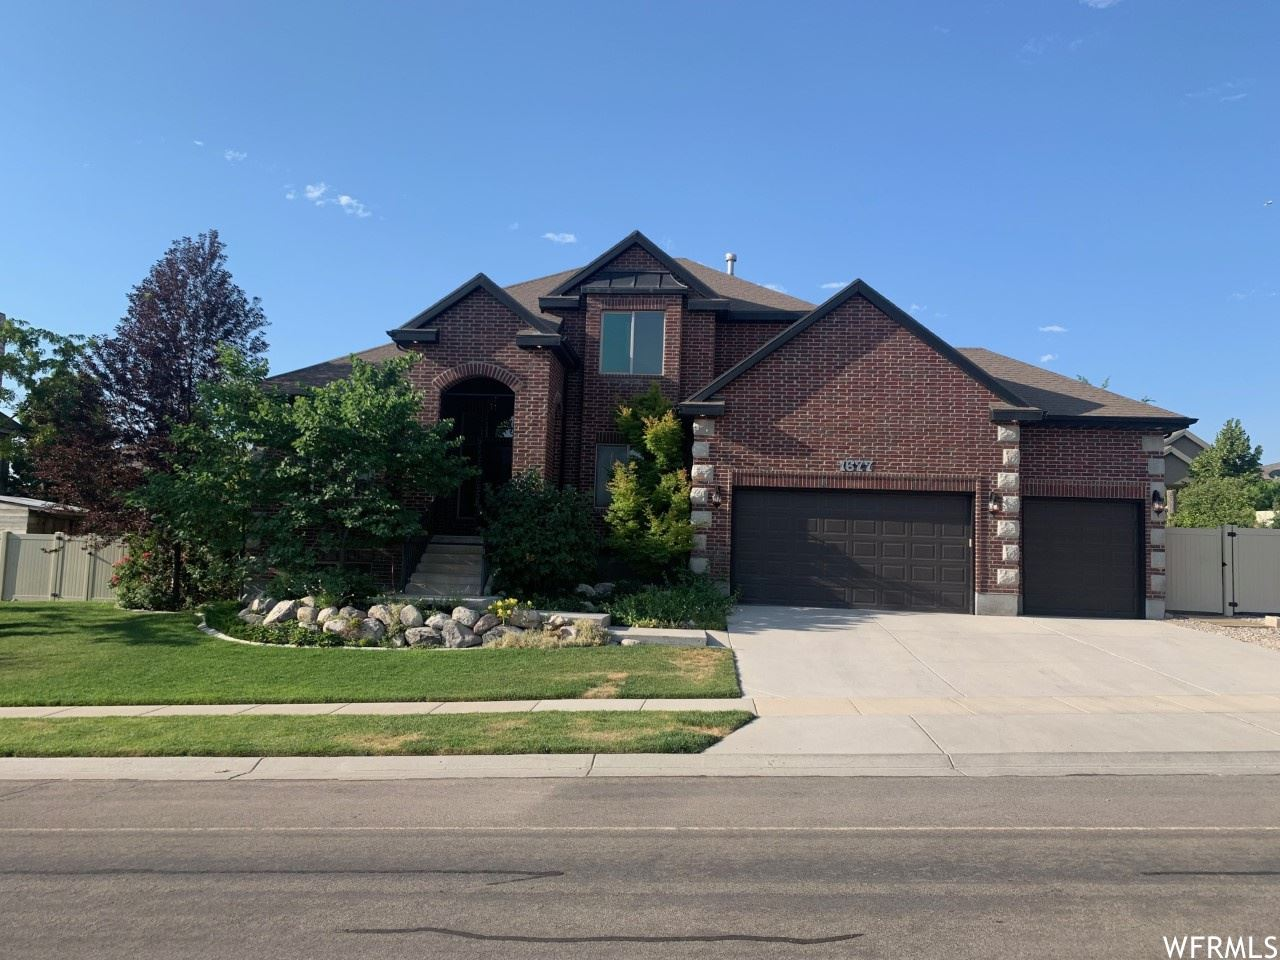 Photo of 1677 W RIVER VIEW DR, Bluffdale, UT 84065 (MLS # 1754125)